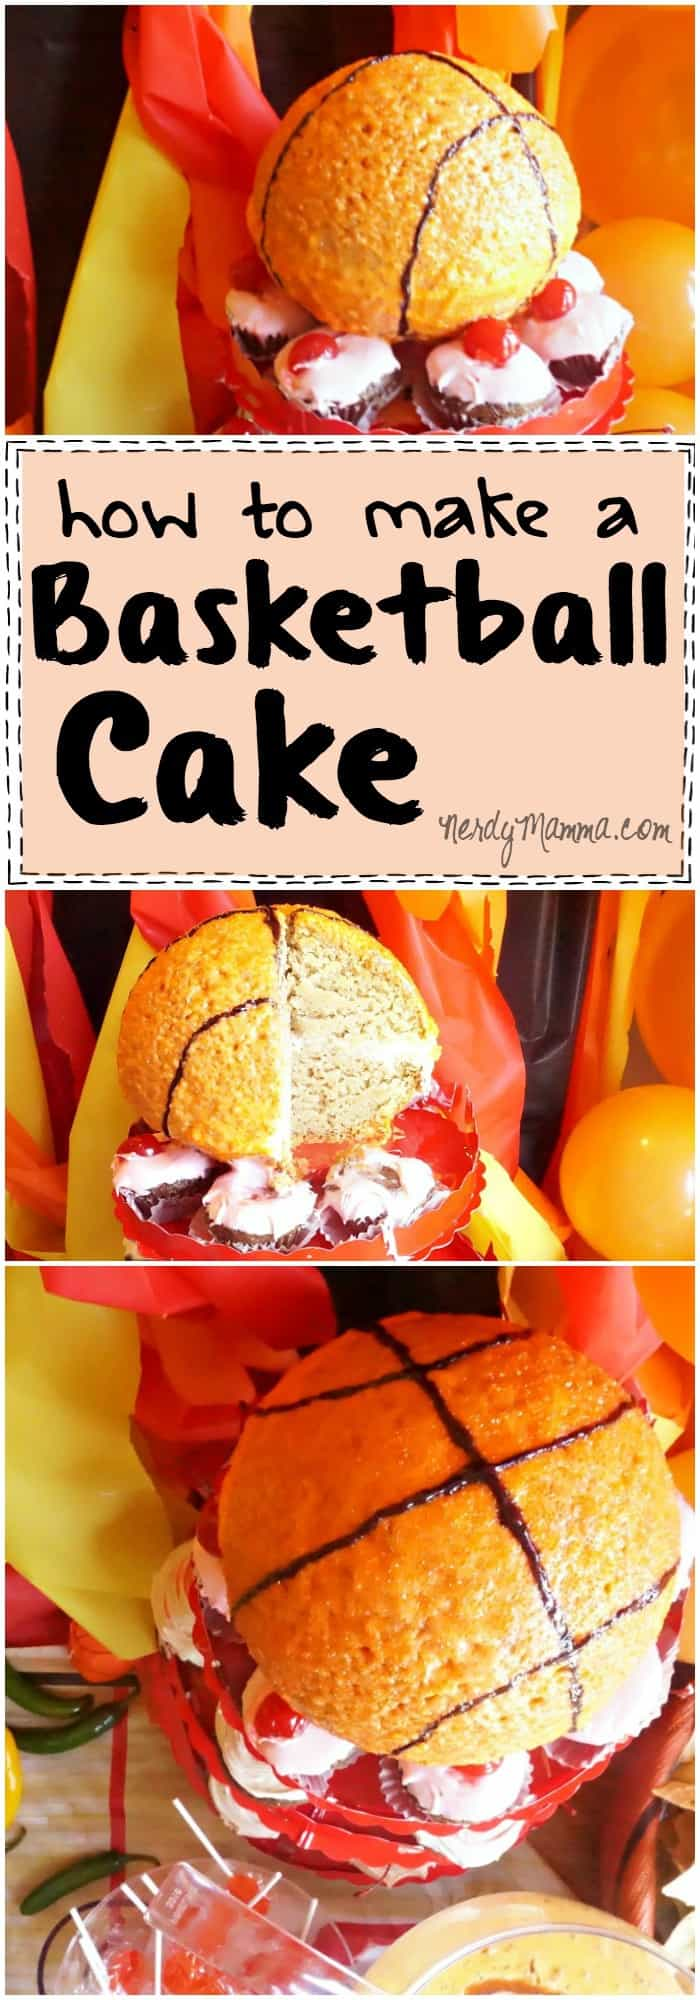 This tutorial for making a basketball cake is so easy! I love it. And the cake recipe that goes with it Yummy!